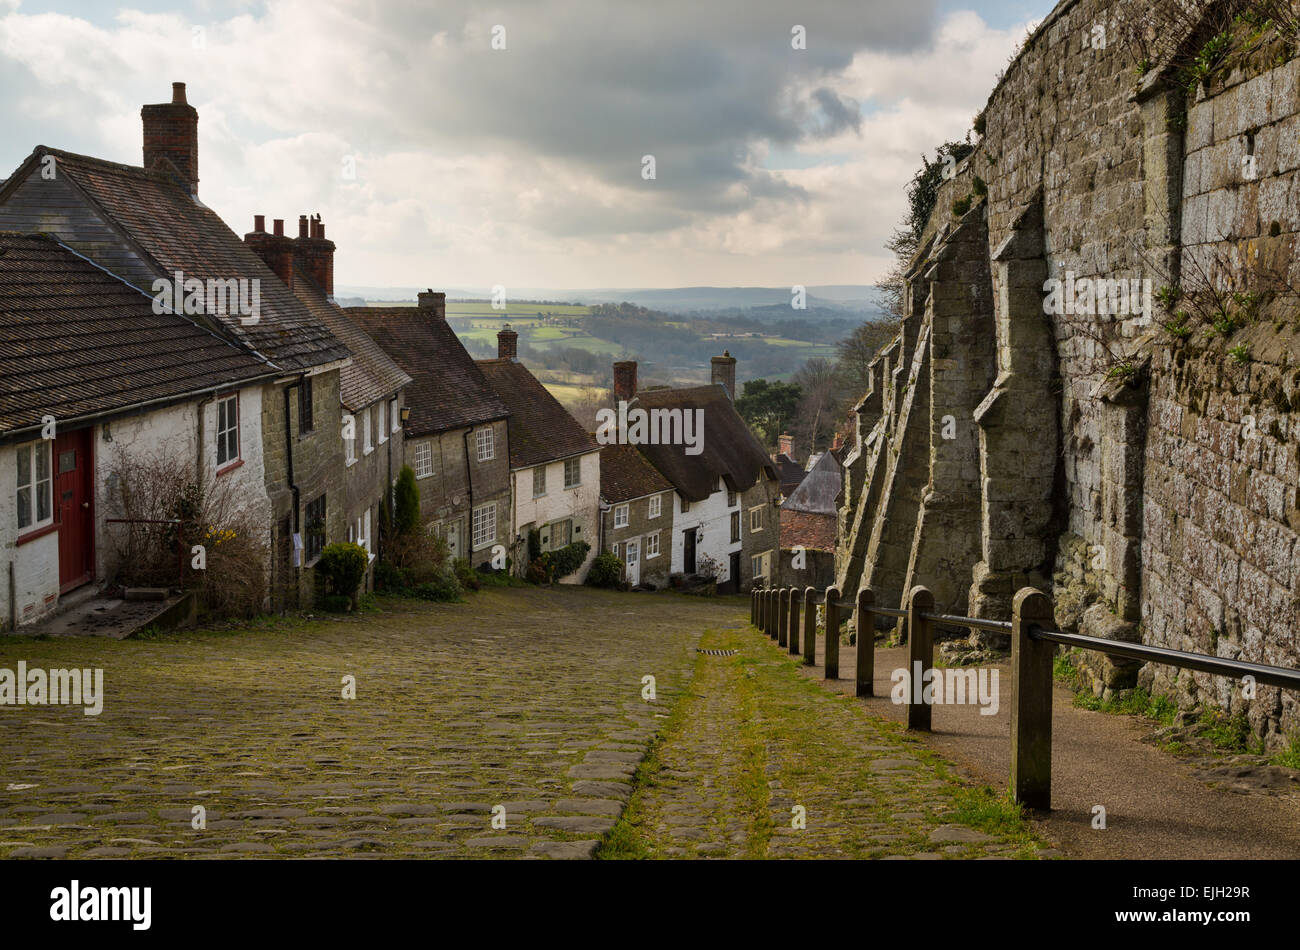 The famous Gold Hill in Shaftesbury - Stock Image